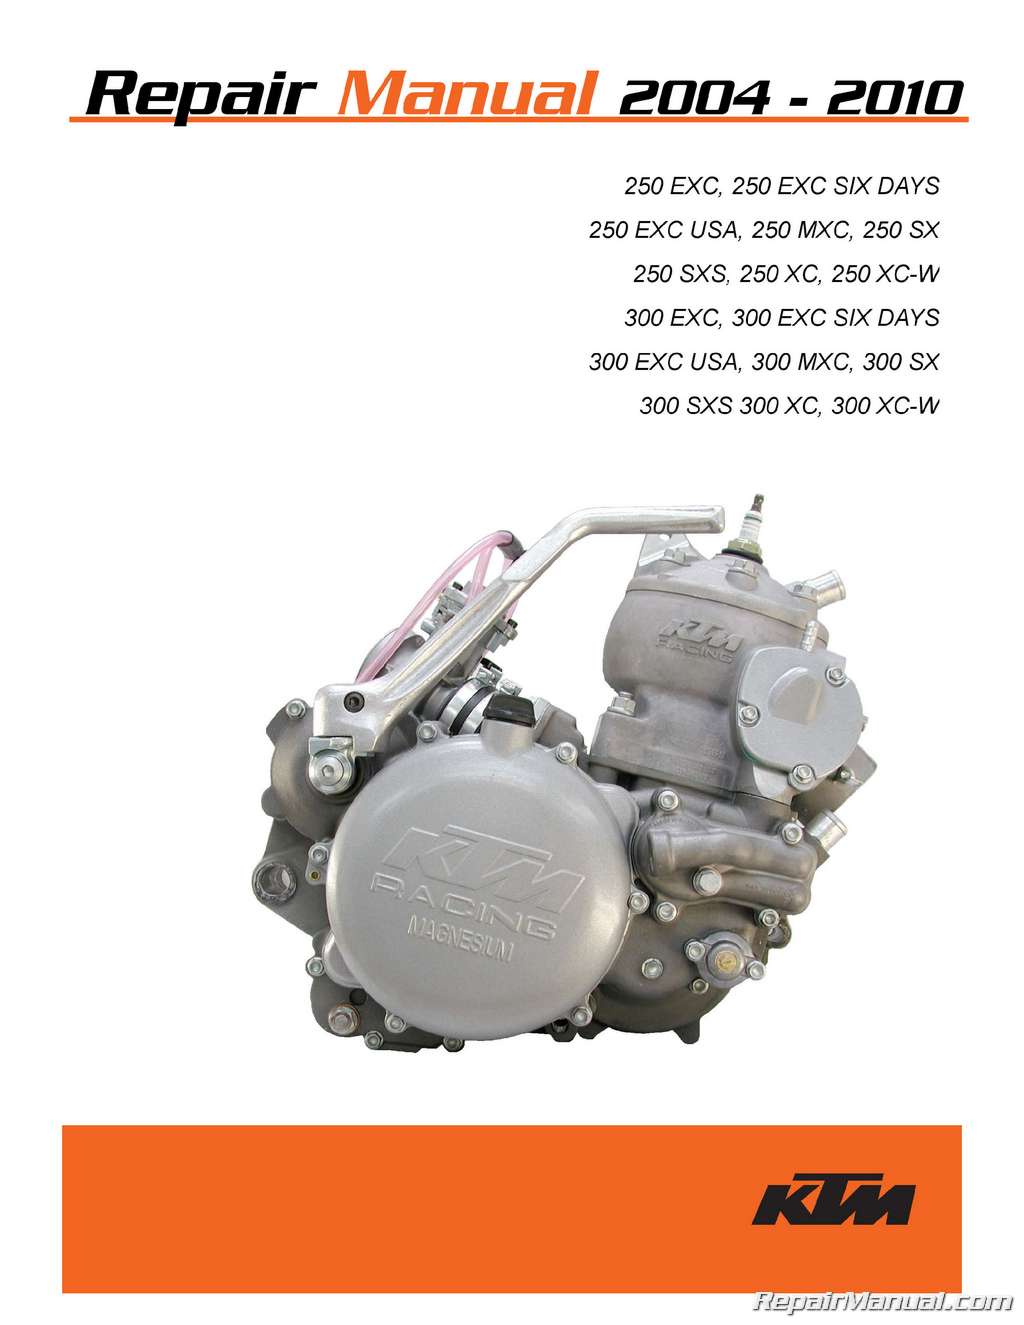 ktm 450 exc wiring diagram crayonbox 2005 f150 pcm 300 free engine image for